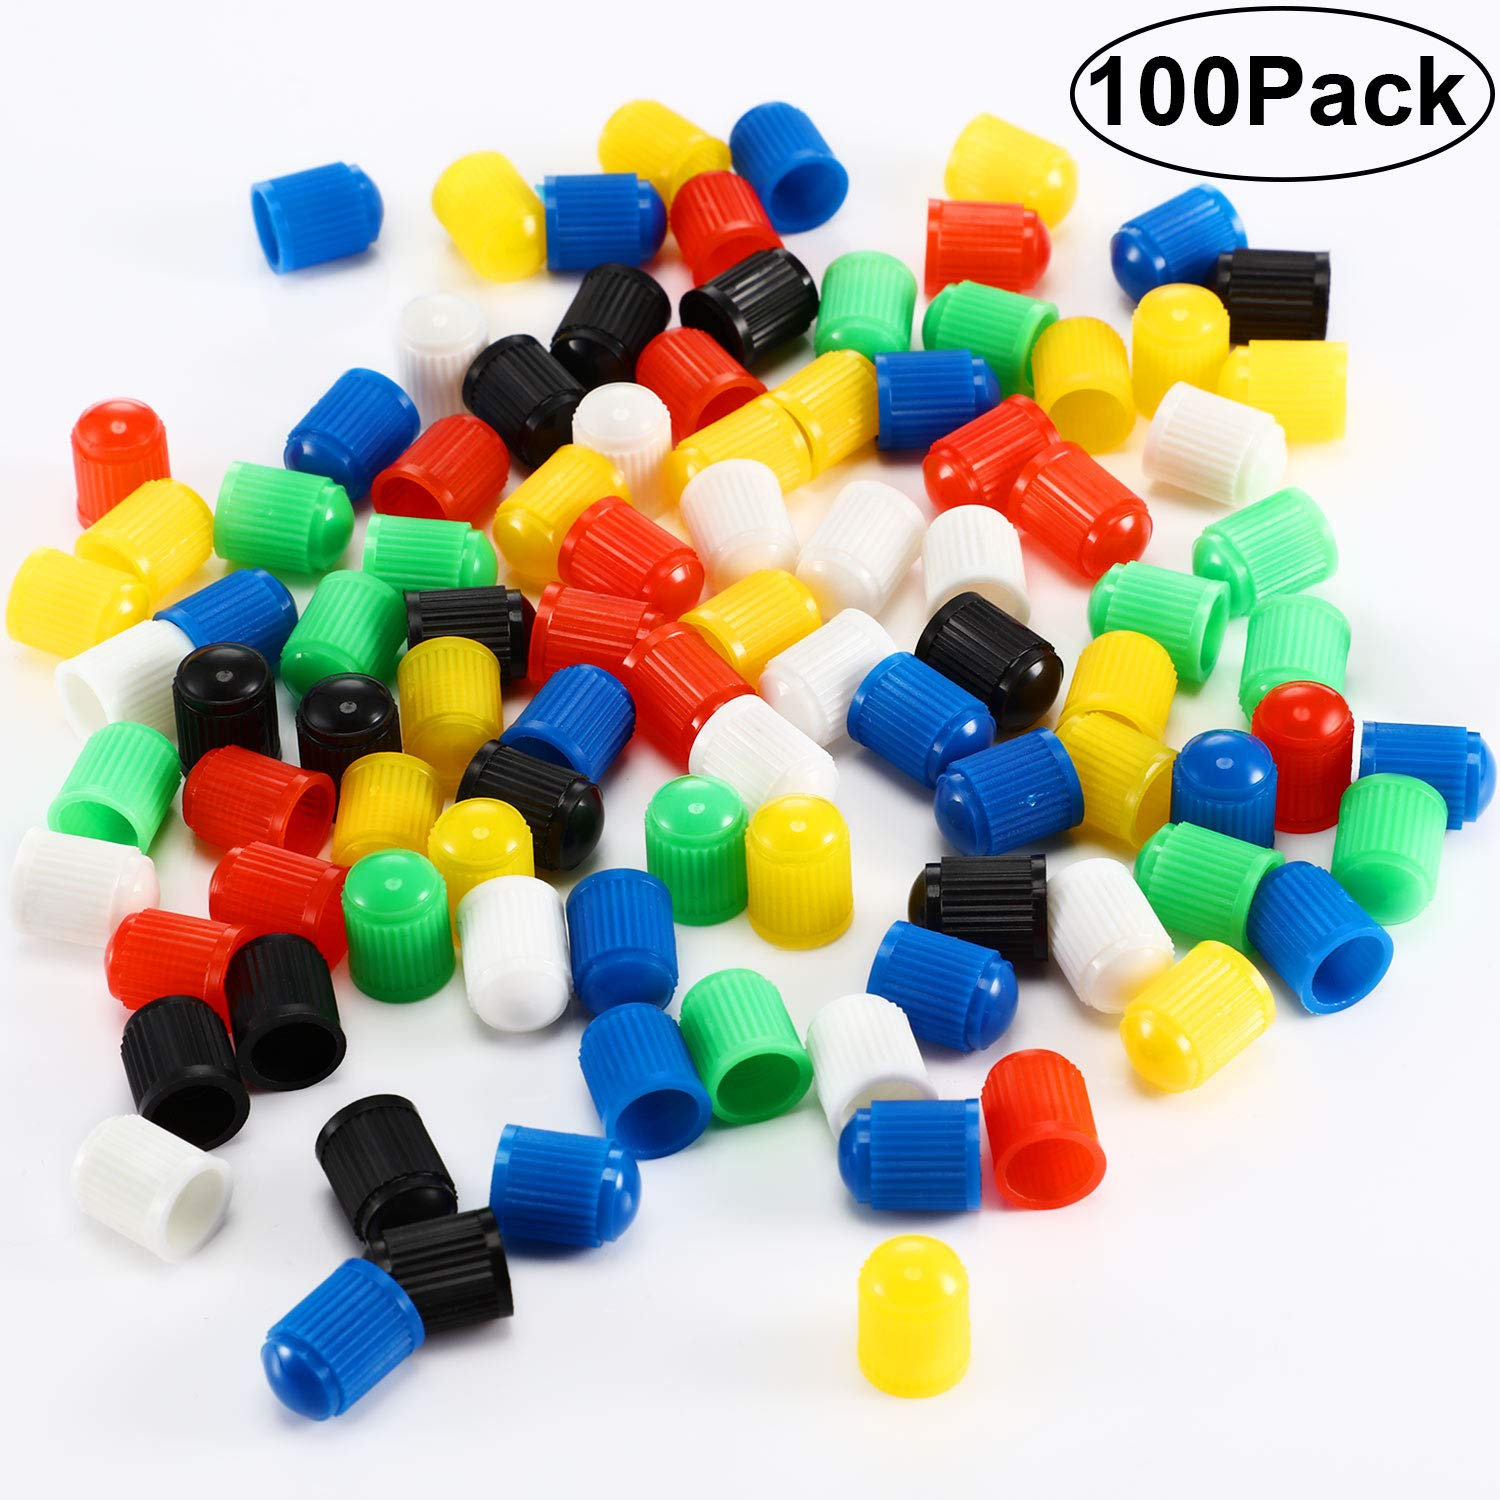 Hsei 100 Pieces Plastic Tyre Valve Dust Caps for Car Bike and Bicycle Motorbike 6 Assorted Colors Trucks